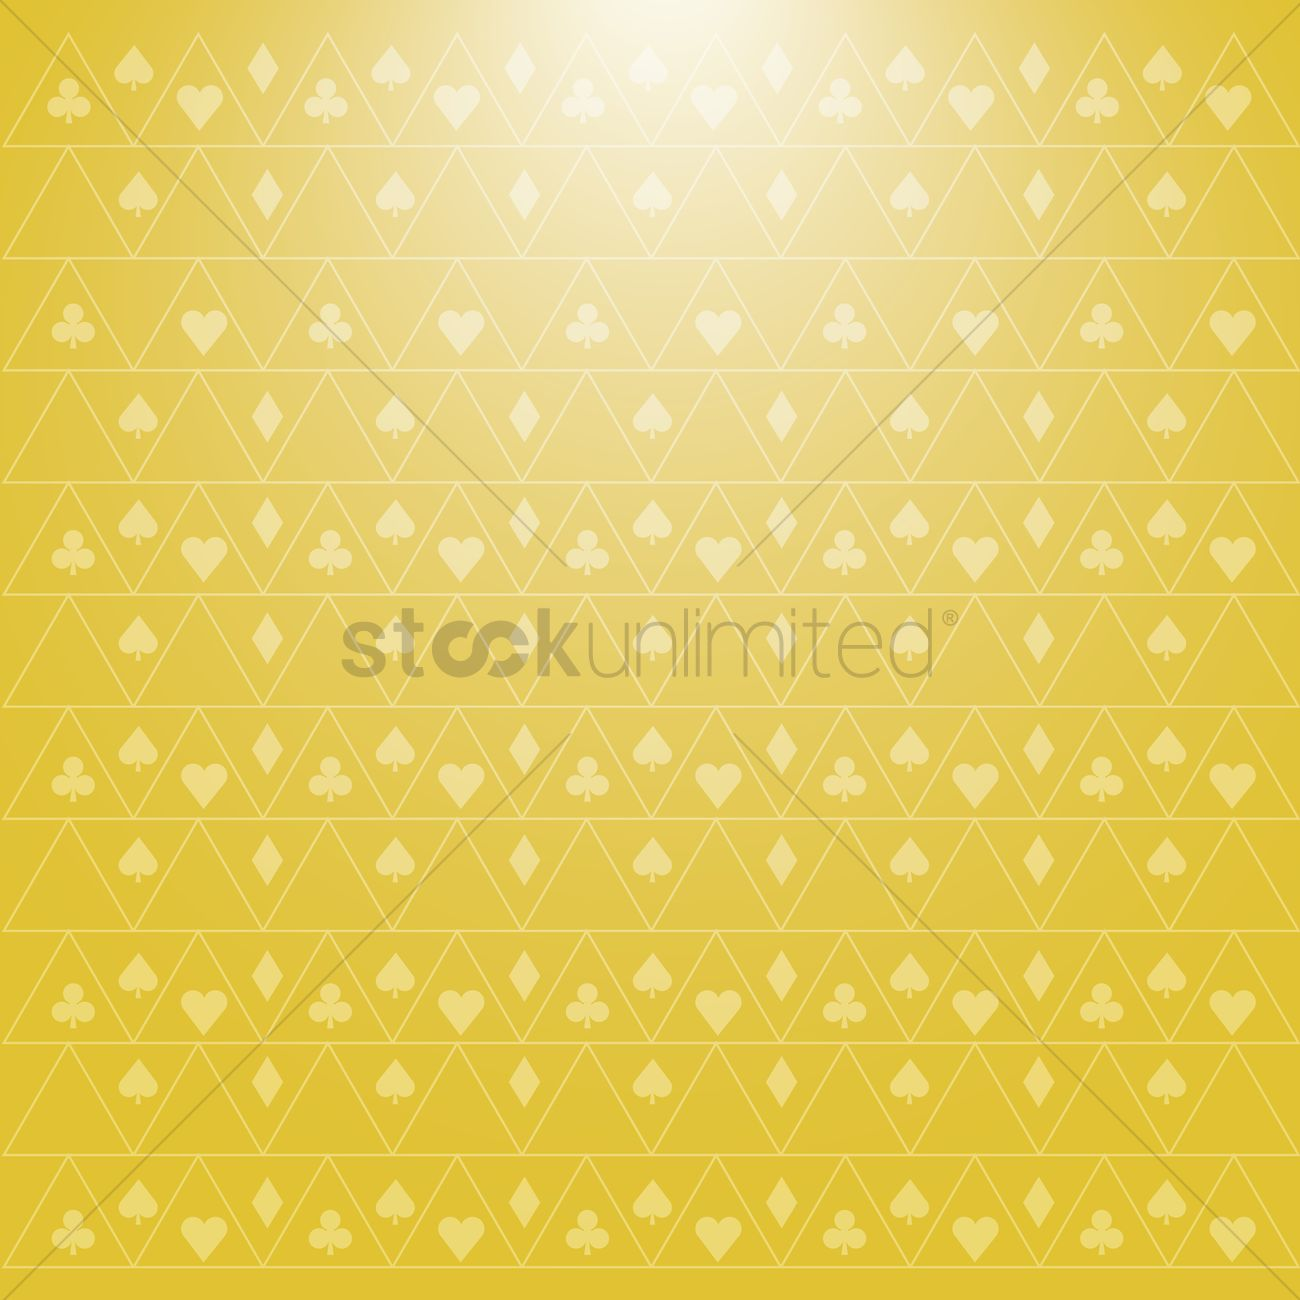 Playing card symbols pattern background vector image 1583129 playing card symbols pattern background vector graphic biocorpaavc